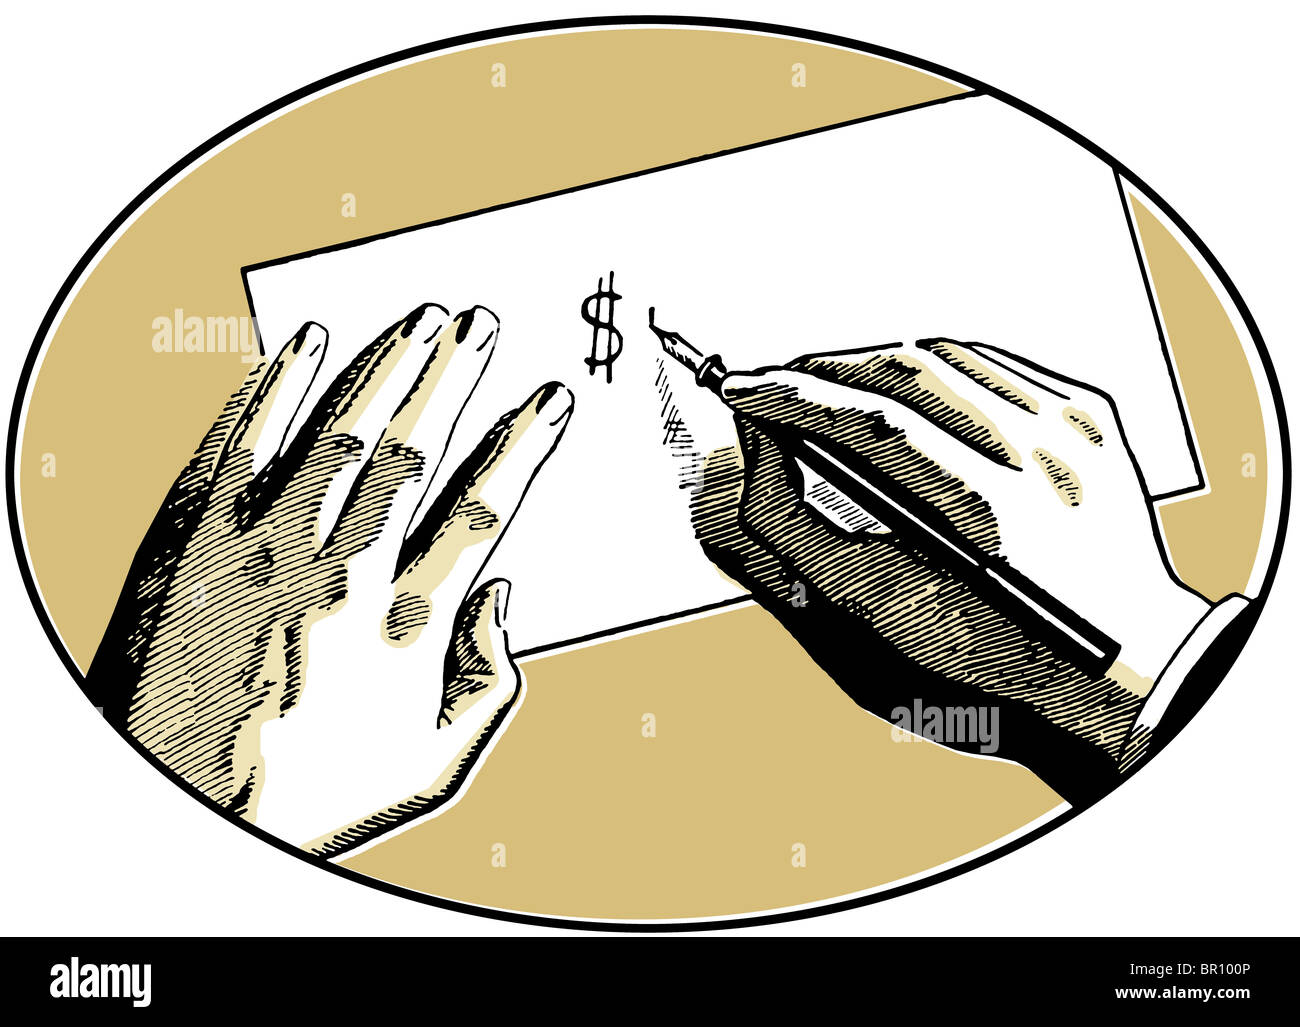 An Illustration Of Two Hands On A Desk Writing A Dollar Symbol Stock